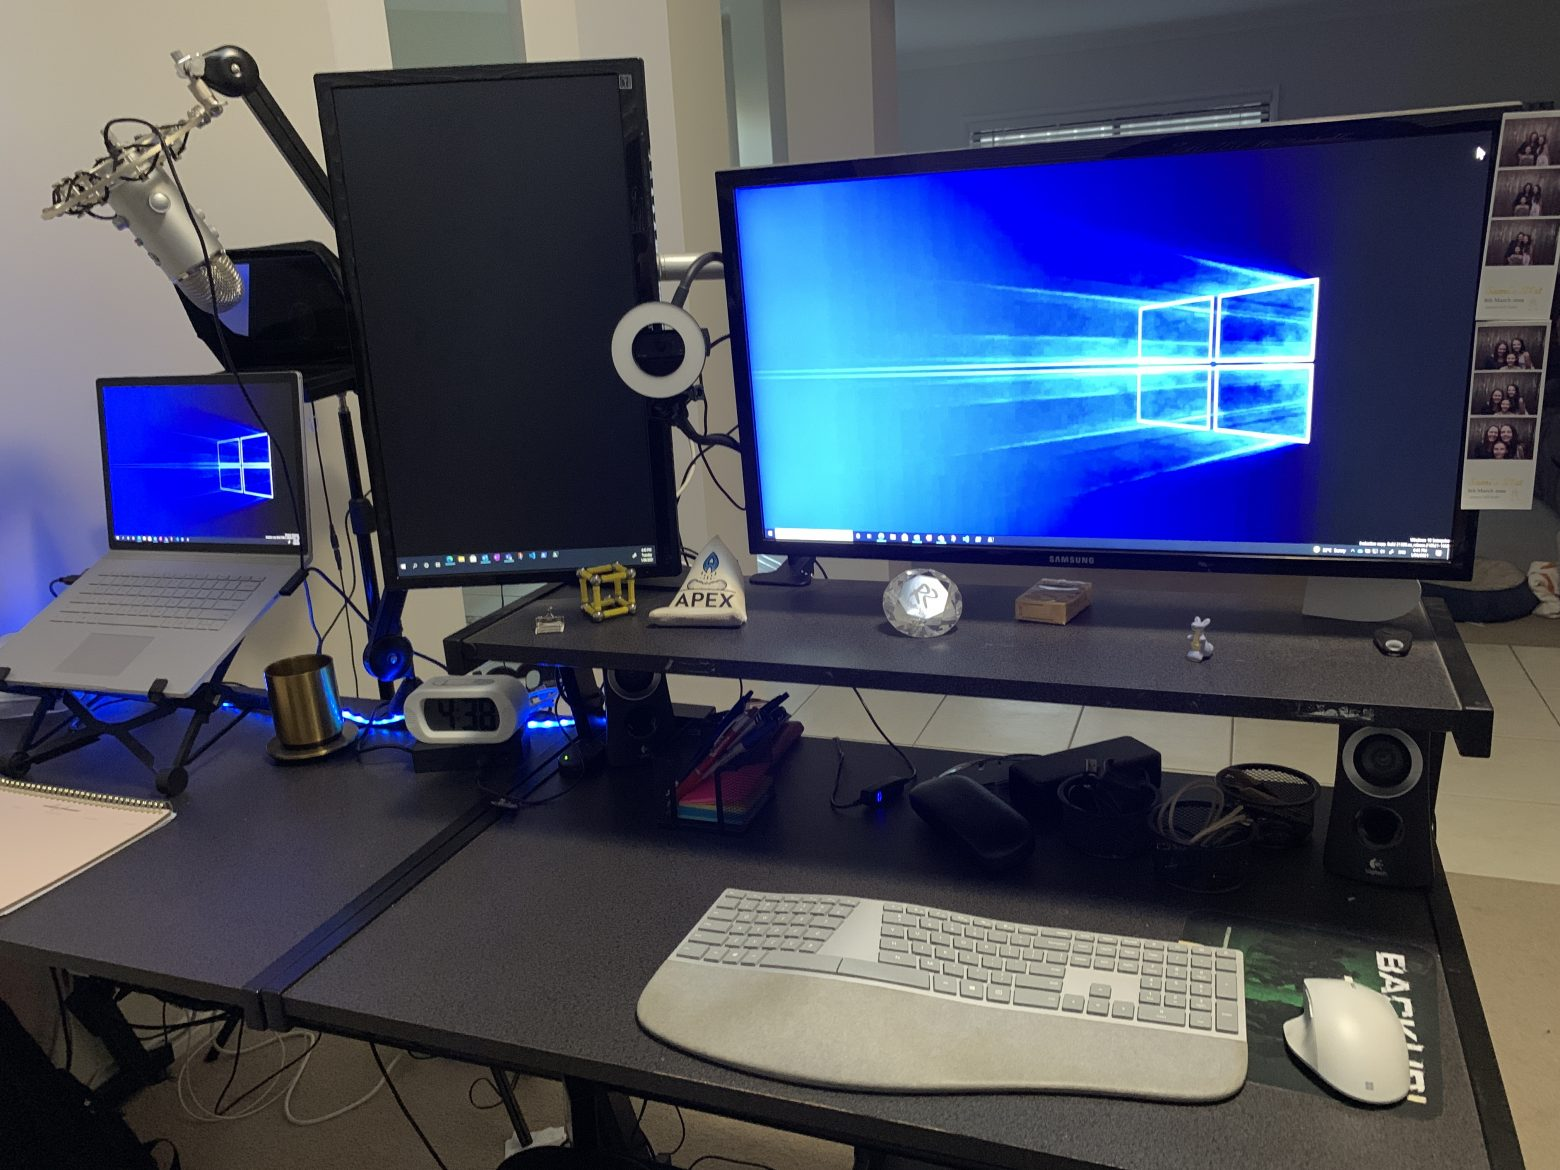 My home office setup for video recording and remote presenting